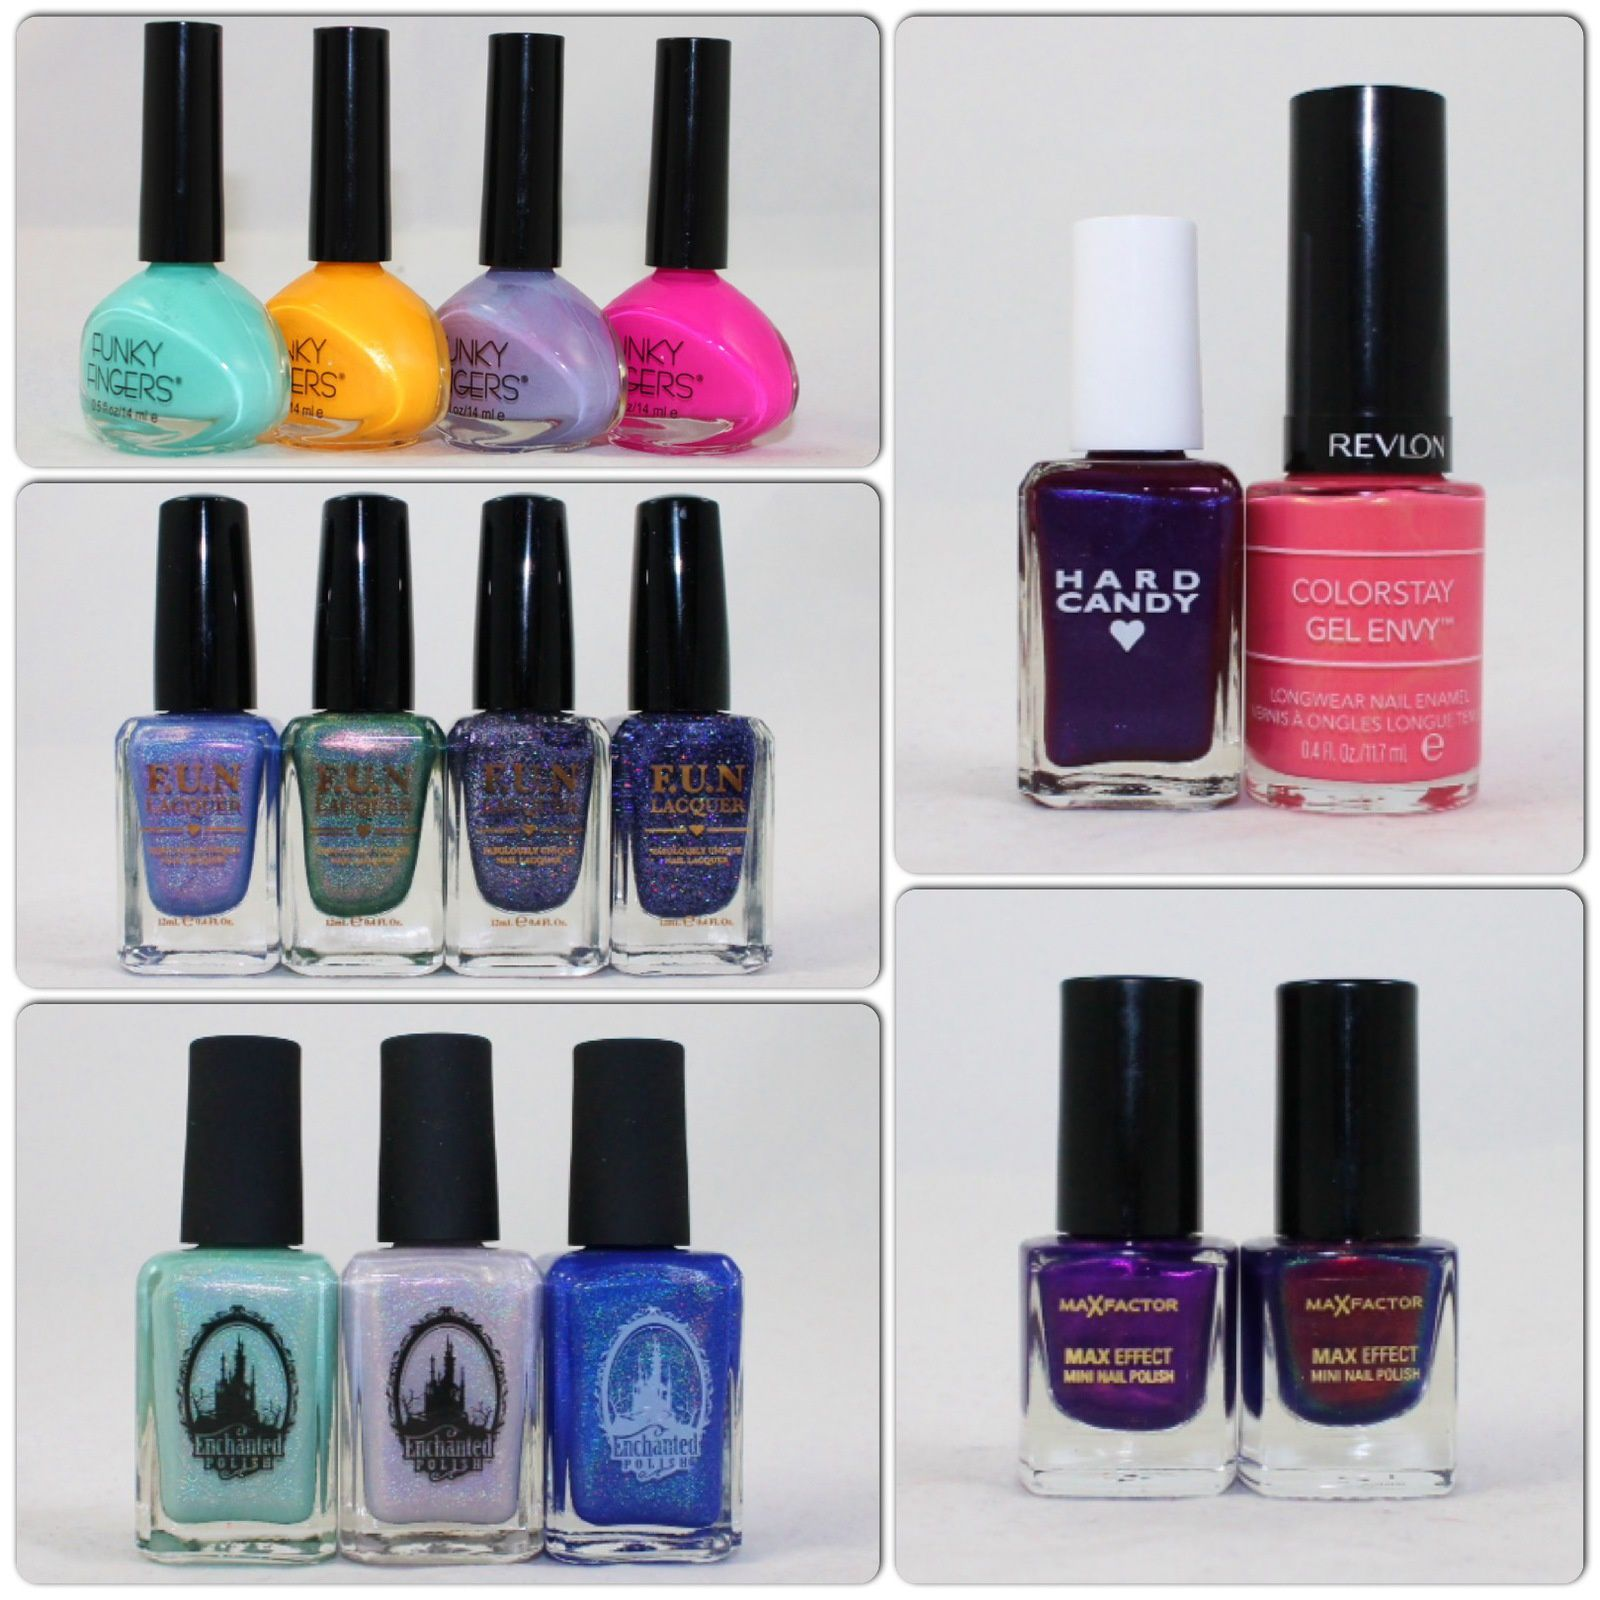 Funky Fingers Space Cadet, Hang Ten Brah, Waverunner, To Infinity (and Beyond). FUN Lacquer Anna, Ariel, Galaxy (H) & Galaxy. Enchanted Polish March, April & May 2015. Hard Candy Scam. Revlon Lady Luck. Max Factor Fantasy Fire (New and old versions)